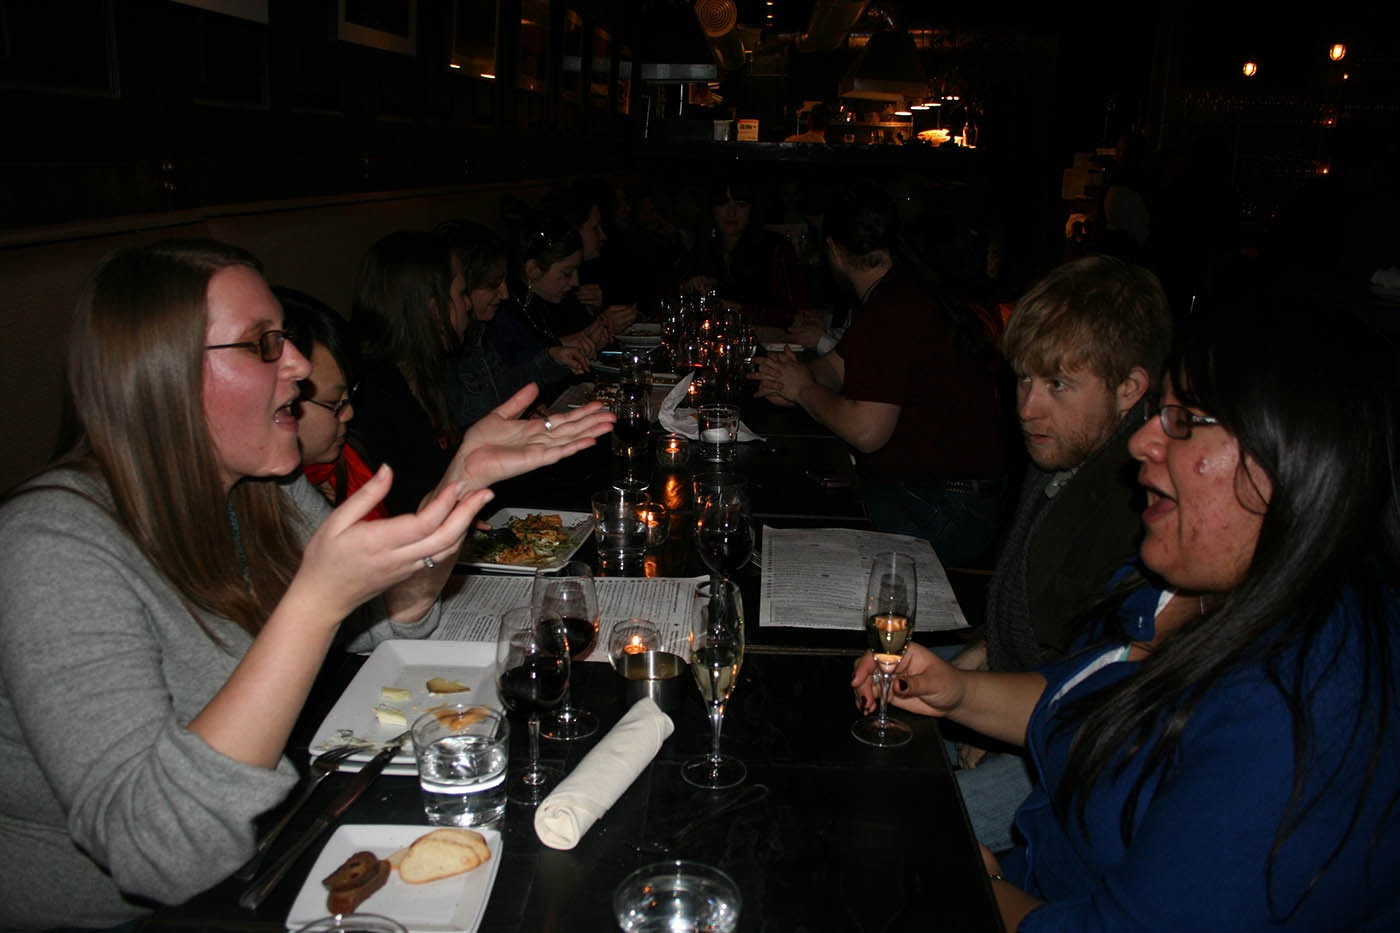 My 27th birthday party at Volo wine bar in Chicago, Illinois.